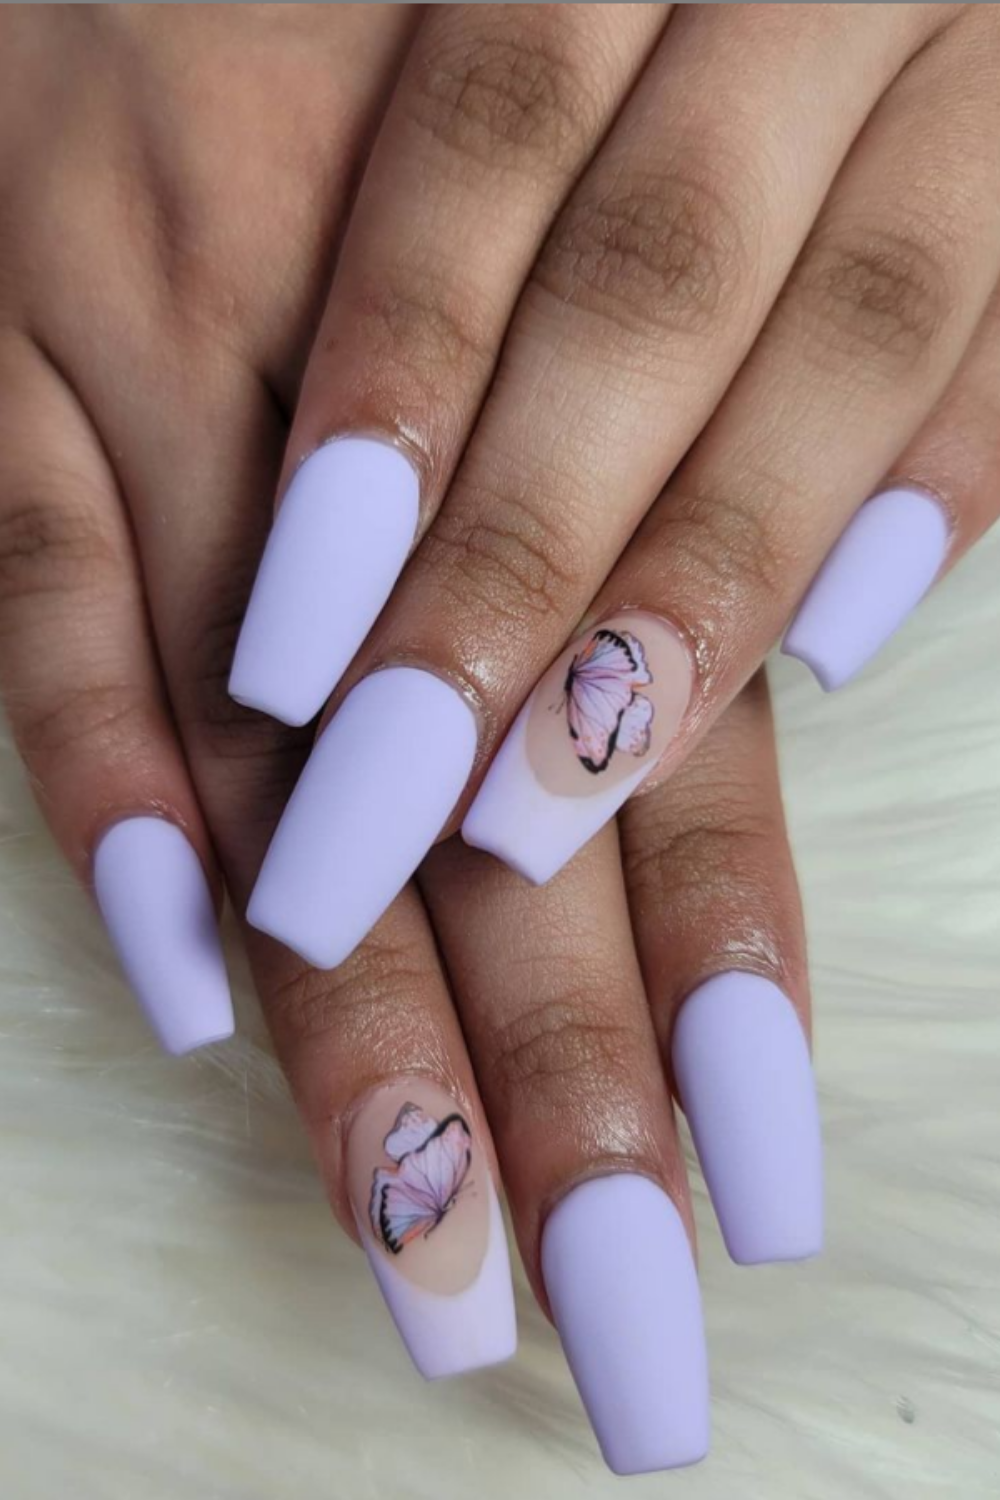 Purple butterfly nails look chic and incredibly elegant